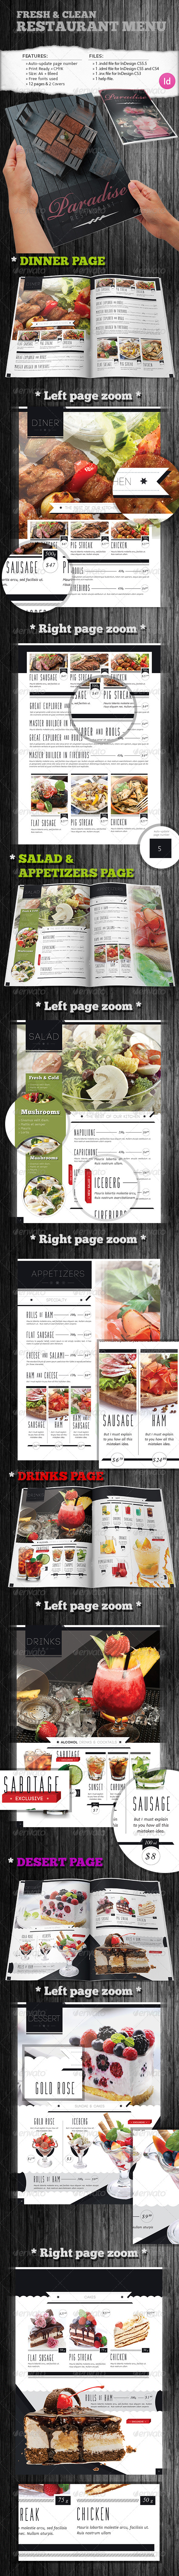 GraphicRiver Fresh & Clean Restaurant Menu 8349763